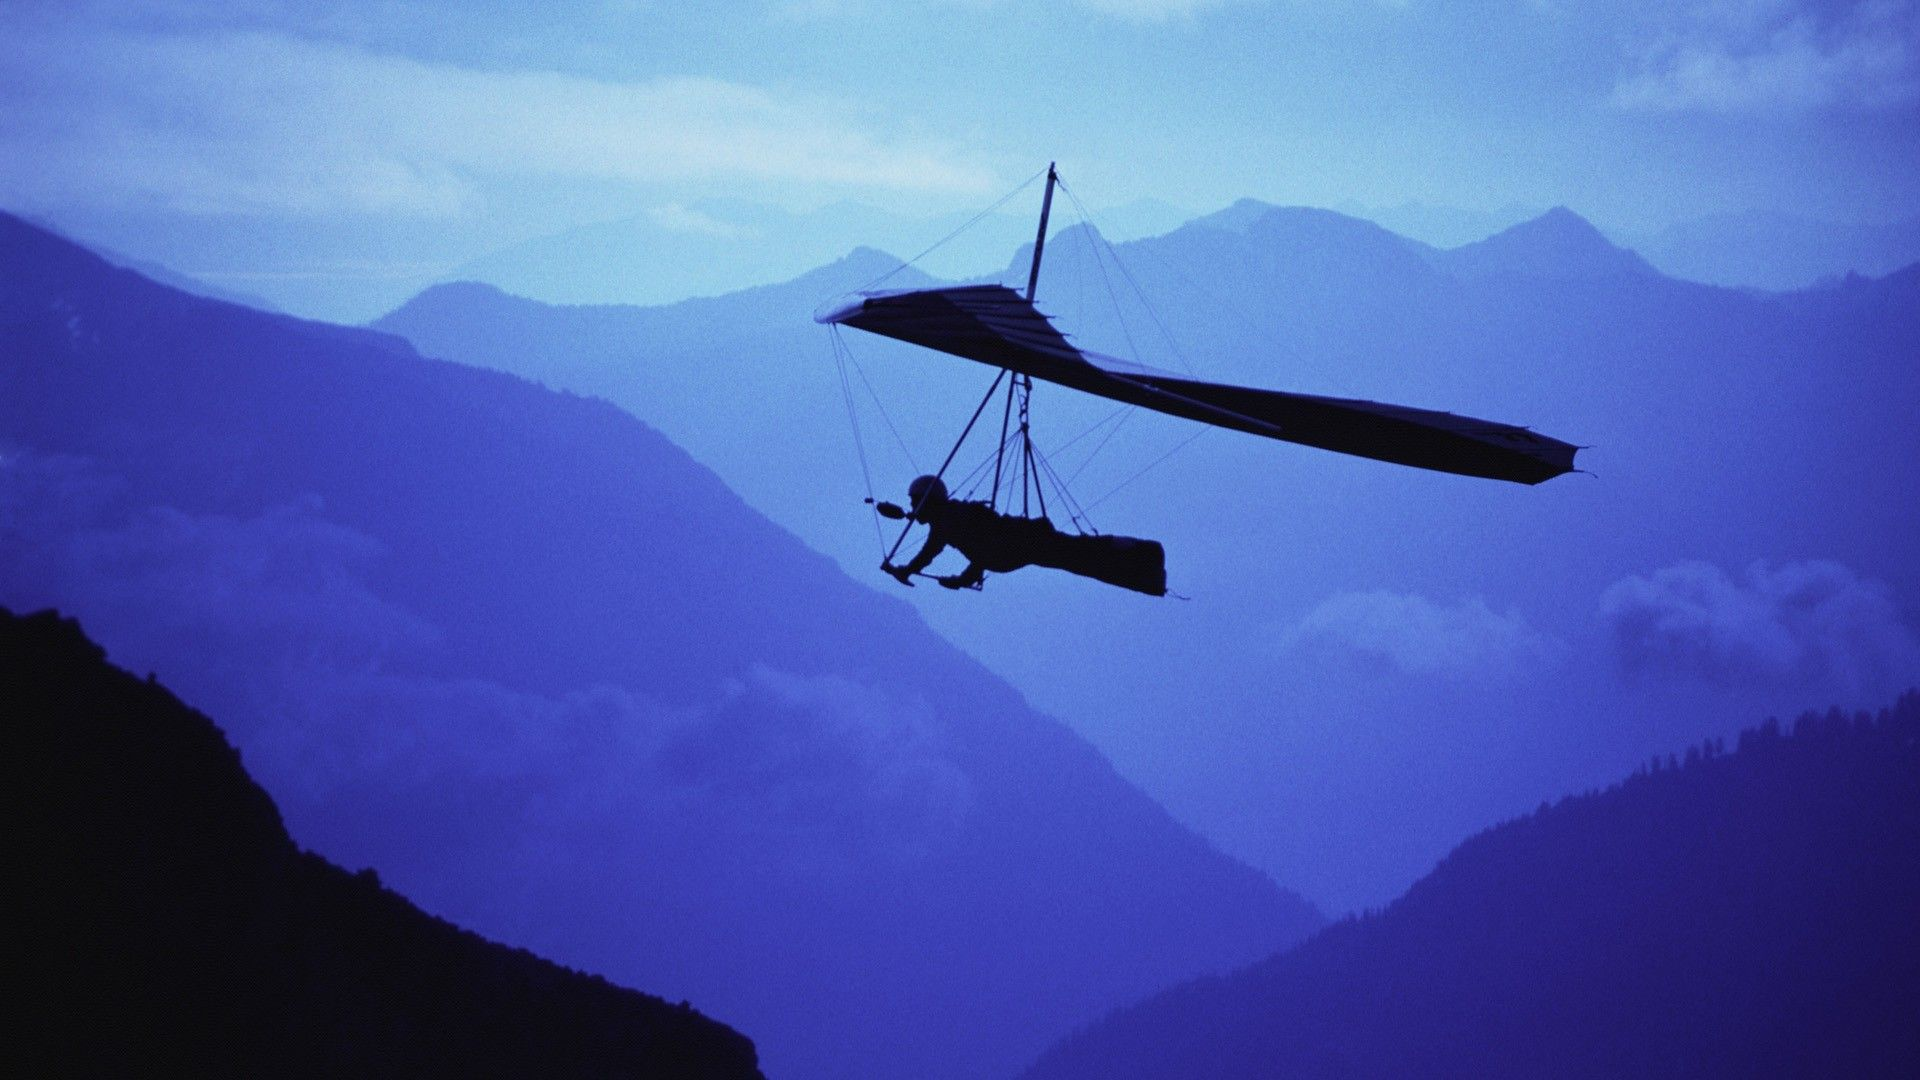 Image Detail For Hang Glider Over The Mountains